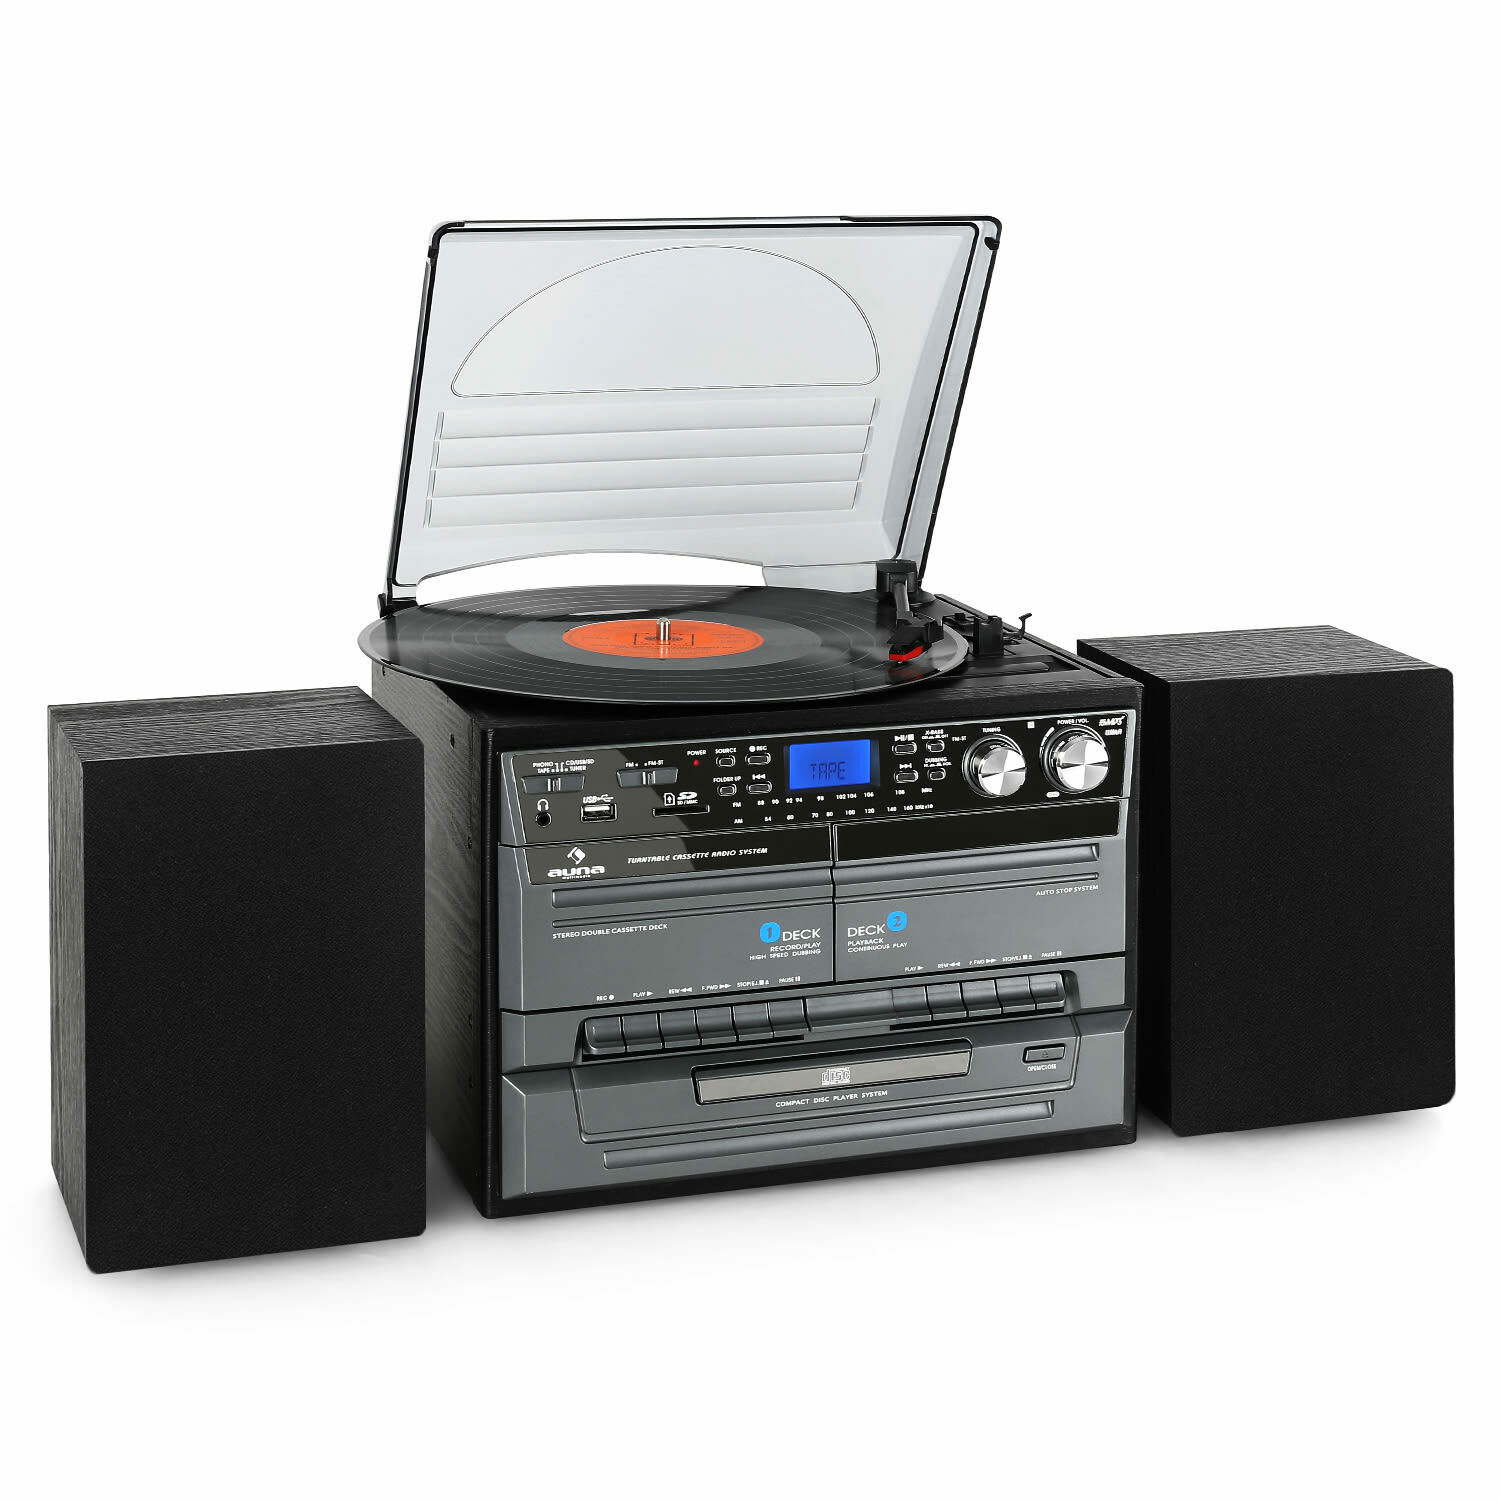 mini chaine stereo hifi cd usb platine stereo k7 encodage mp3 2 enceintes bois eur 109 99. Black Bedroom Furniture Sets. Home Design Ideas